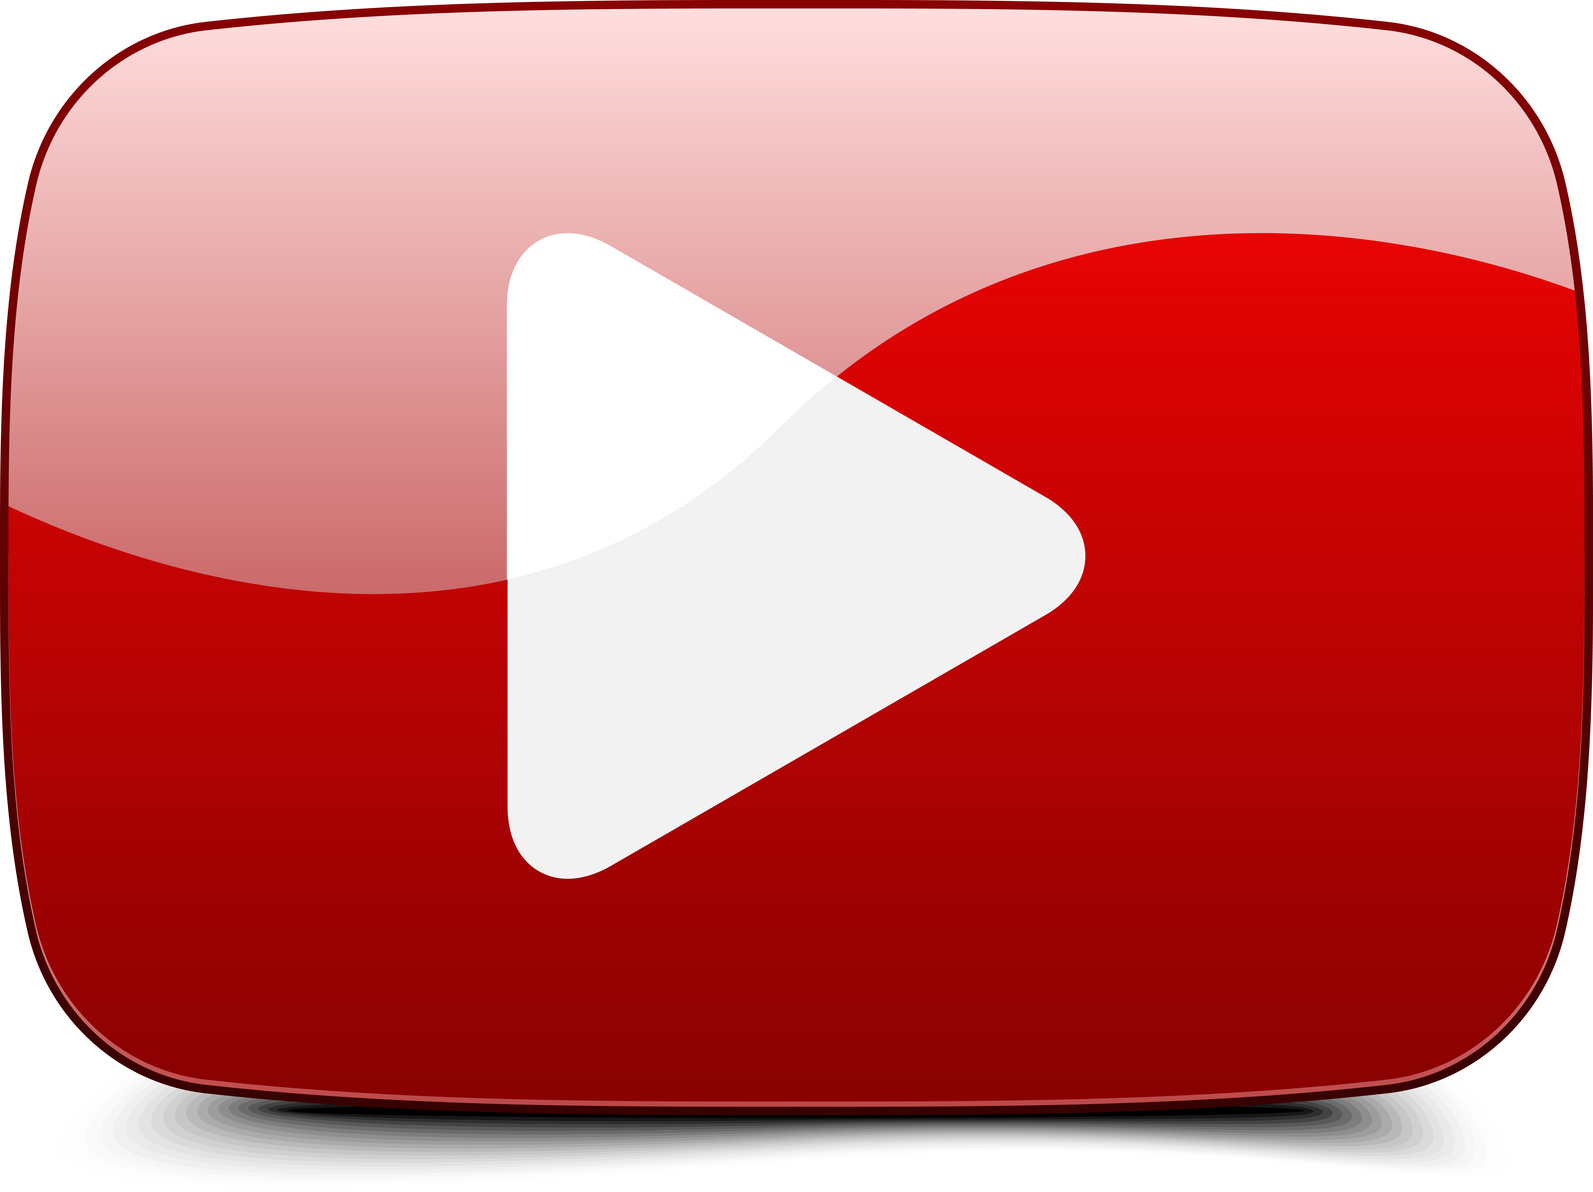 Free Youtube Play Logo Png, Download Free Clip Art, Free Clip Art Pluspng.com  - Youtube Play Logo PNG